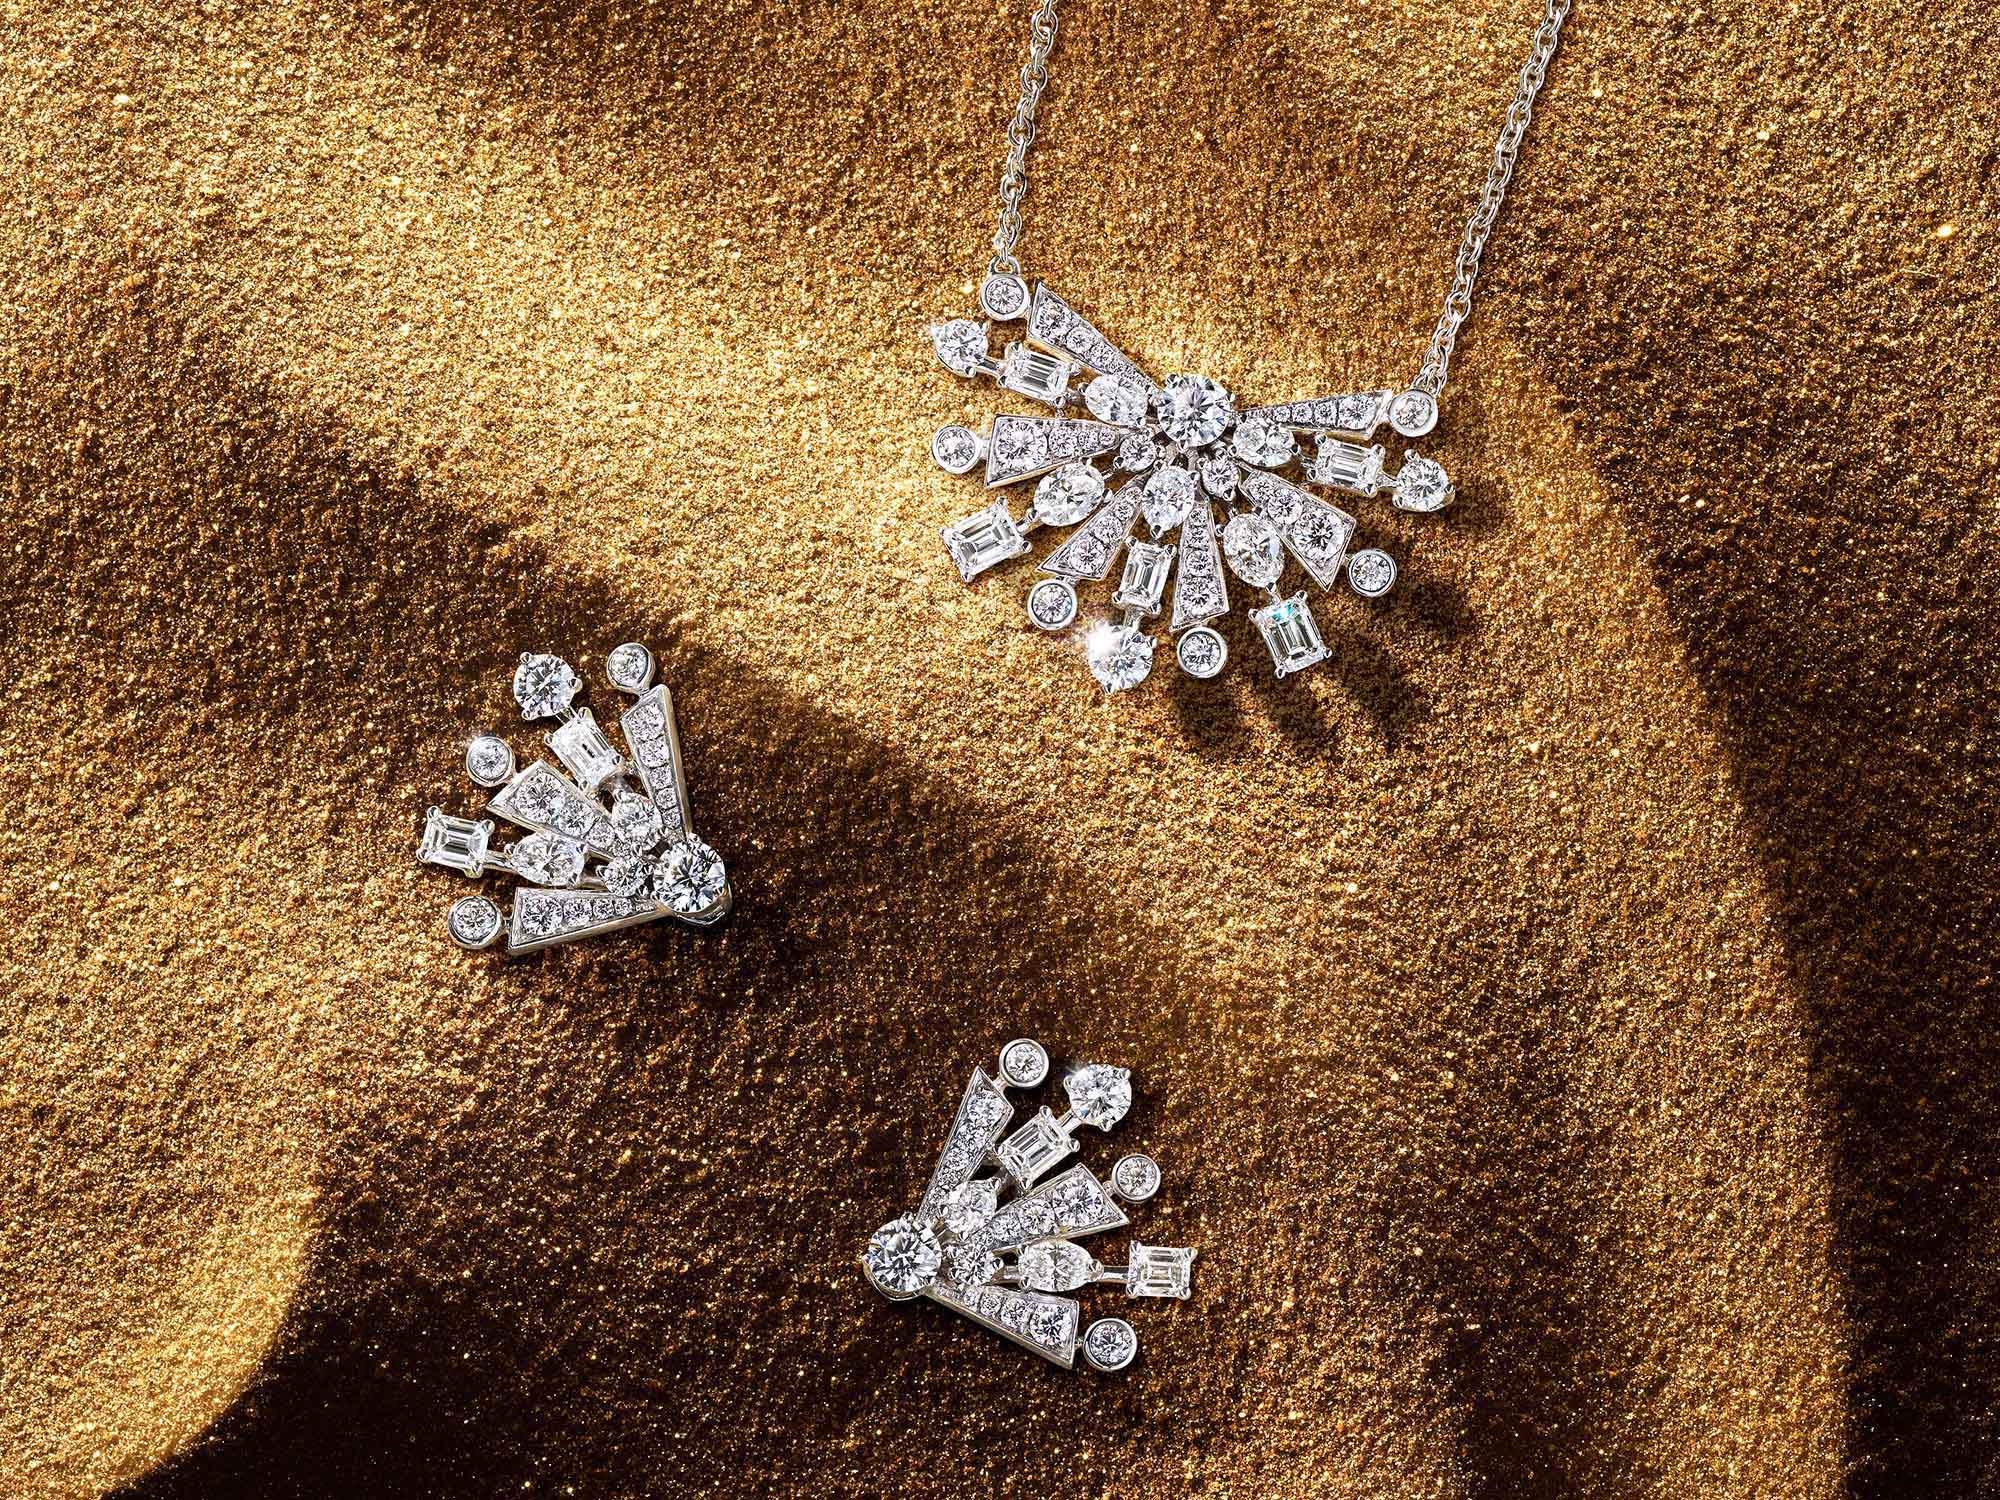 The Graff New Dawn diamond earrings and pendant from the Tribal jewellery collection, on sand